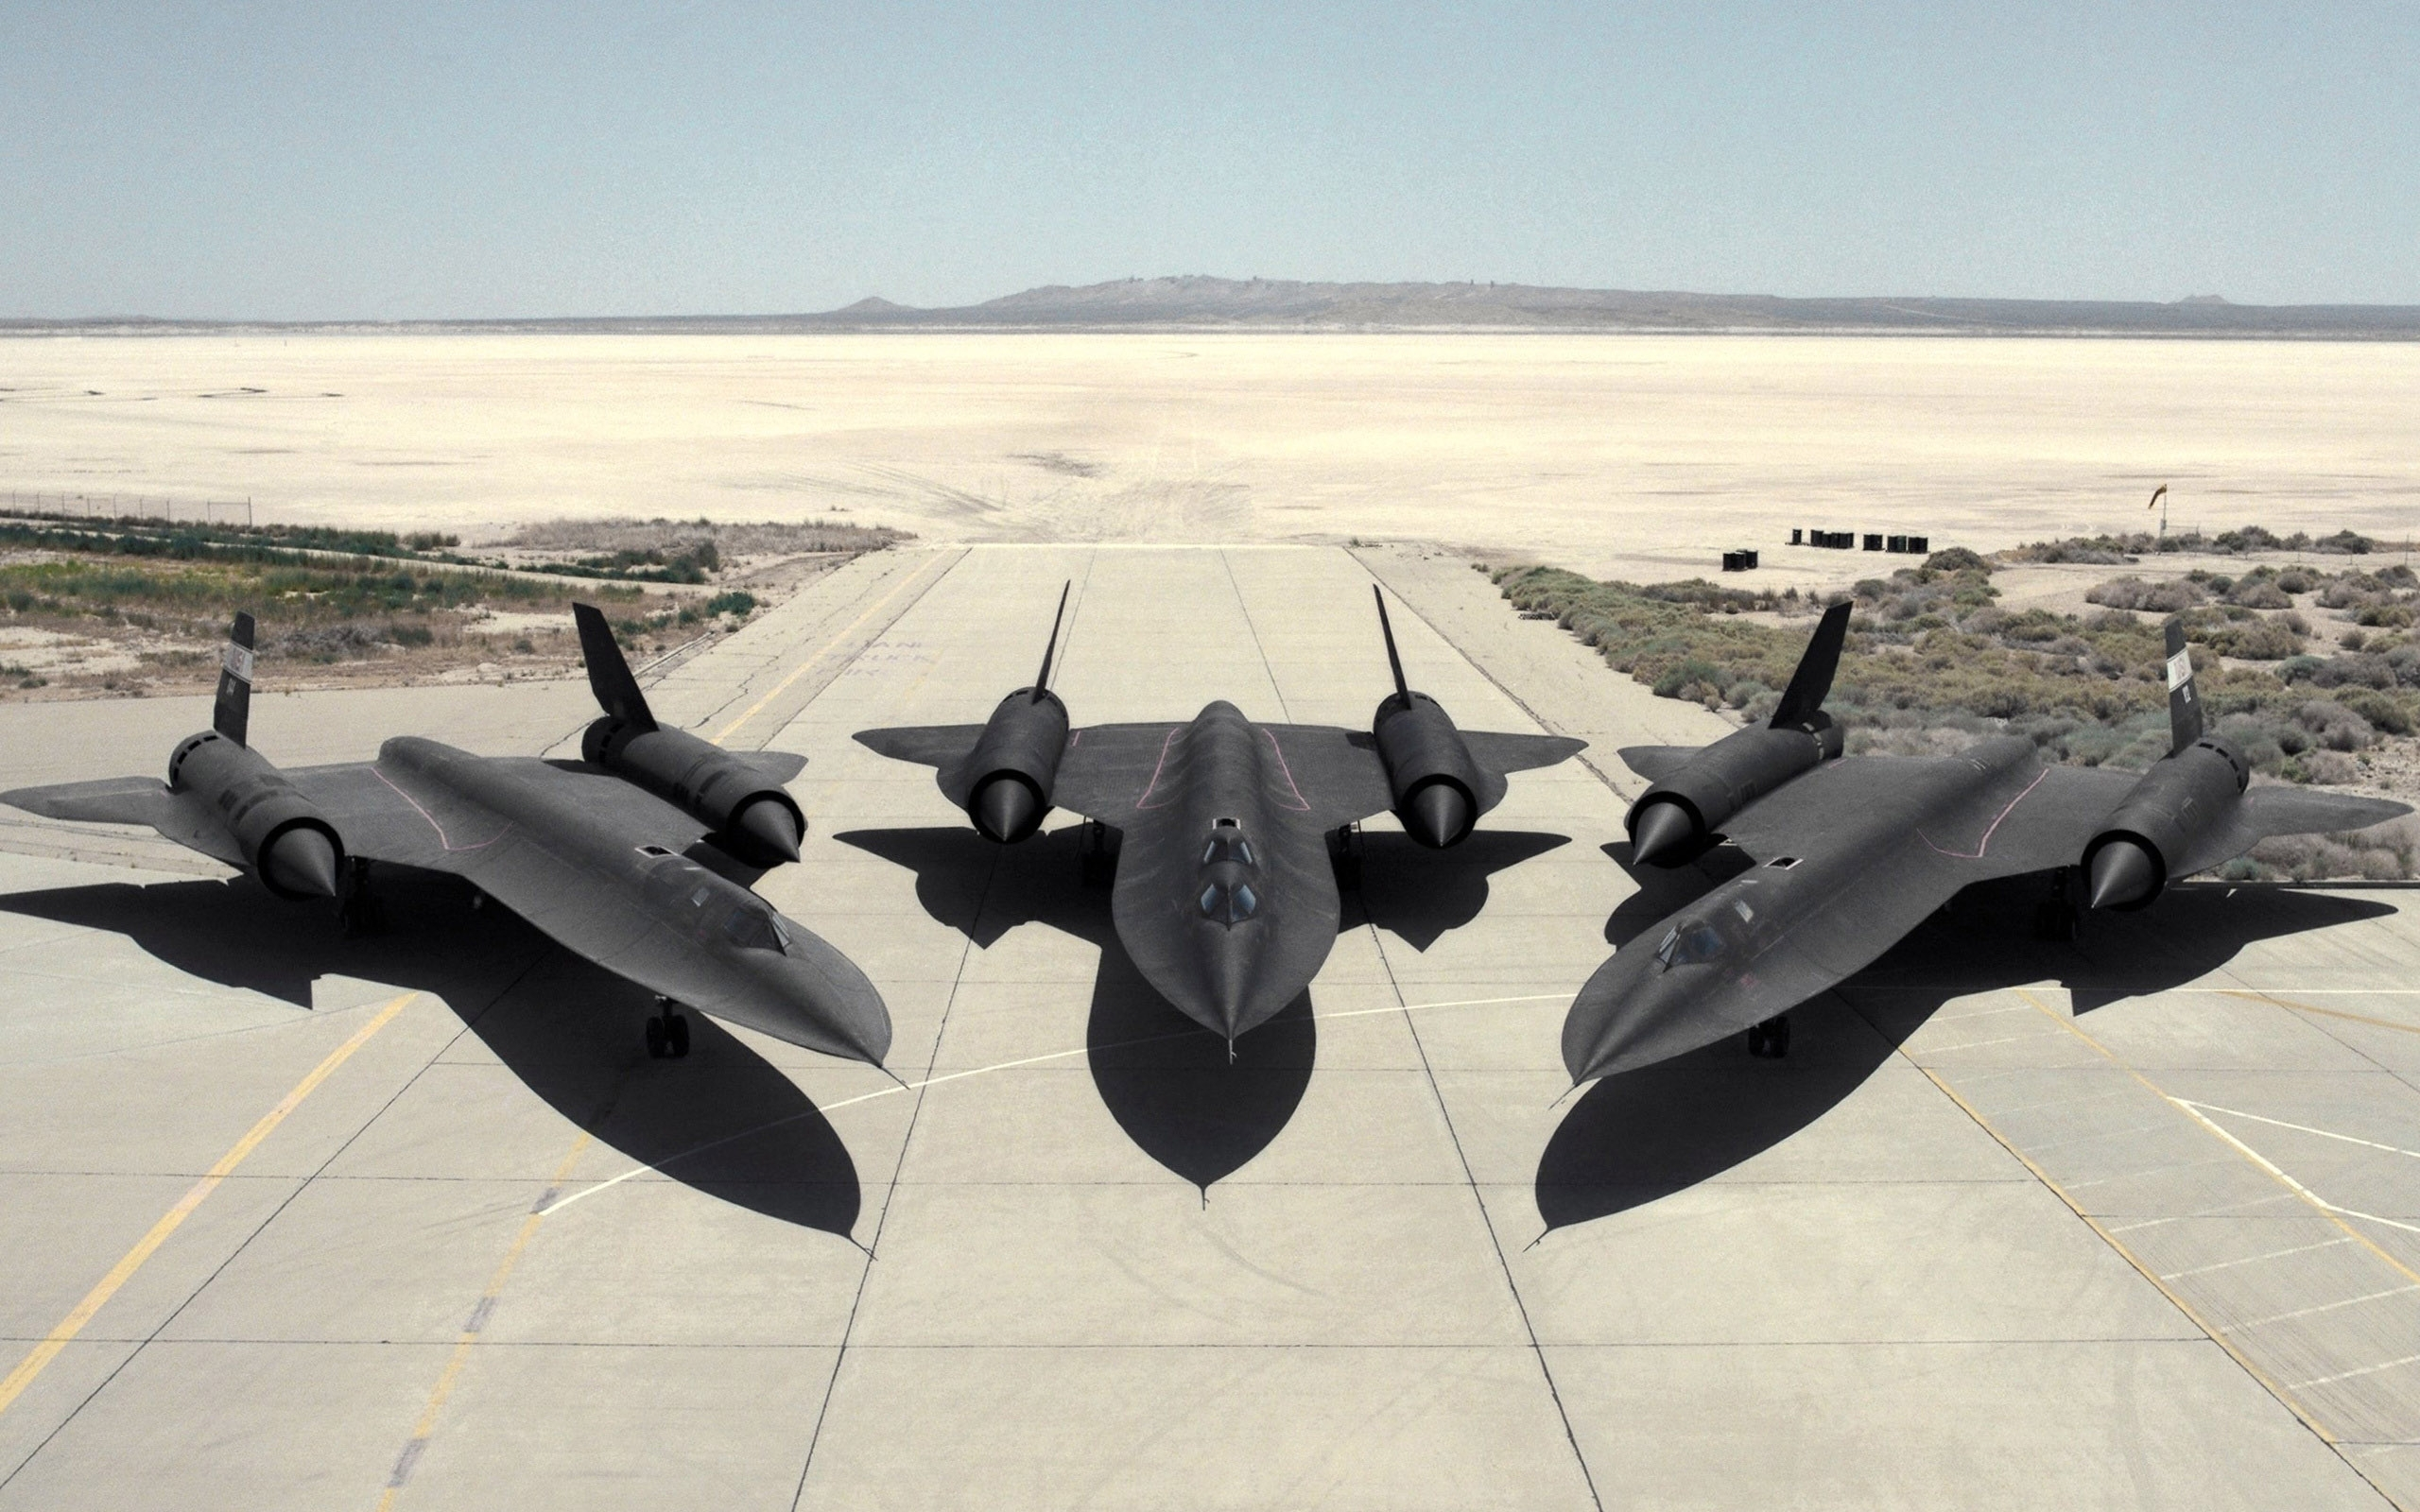 43 lockheed sr-71 blackbird hd wallpapers | background images